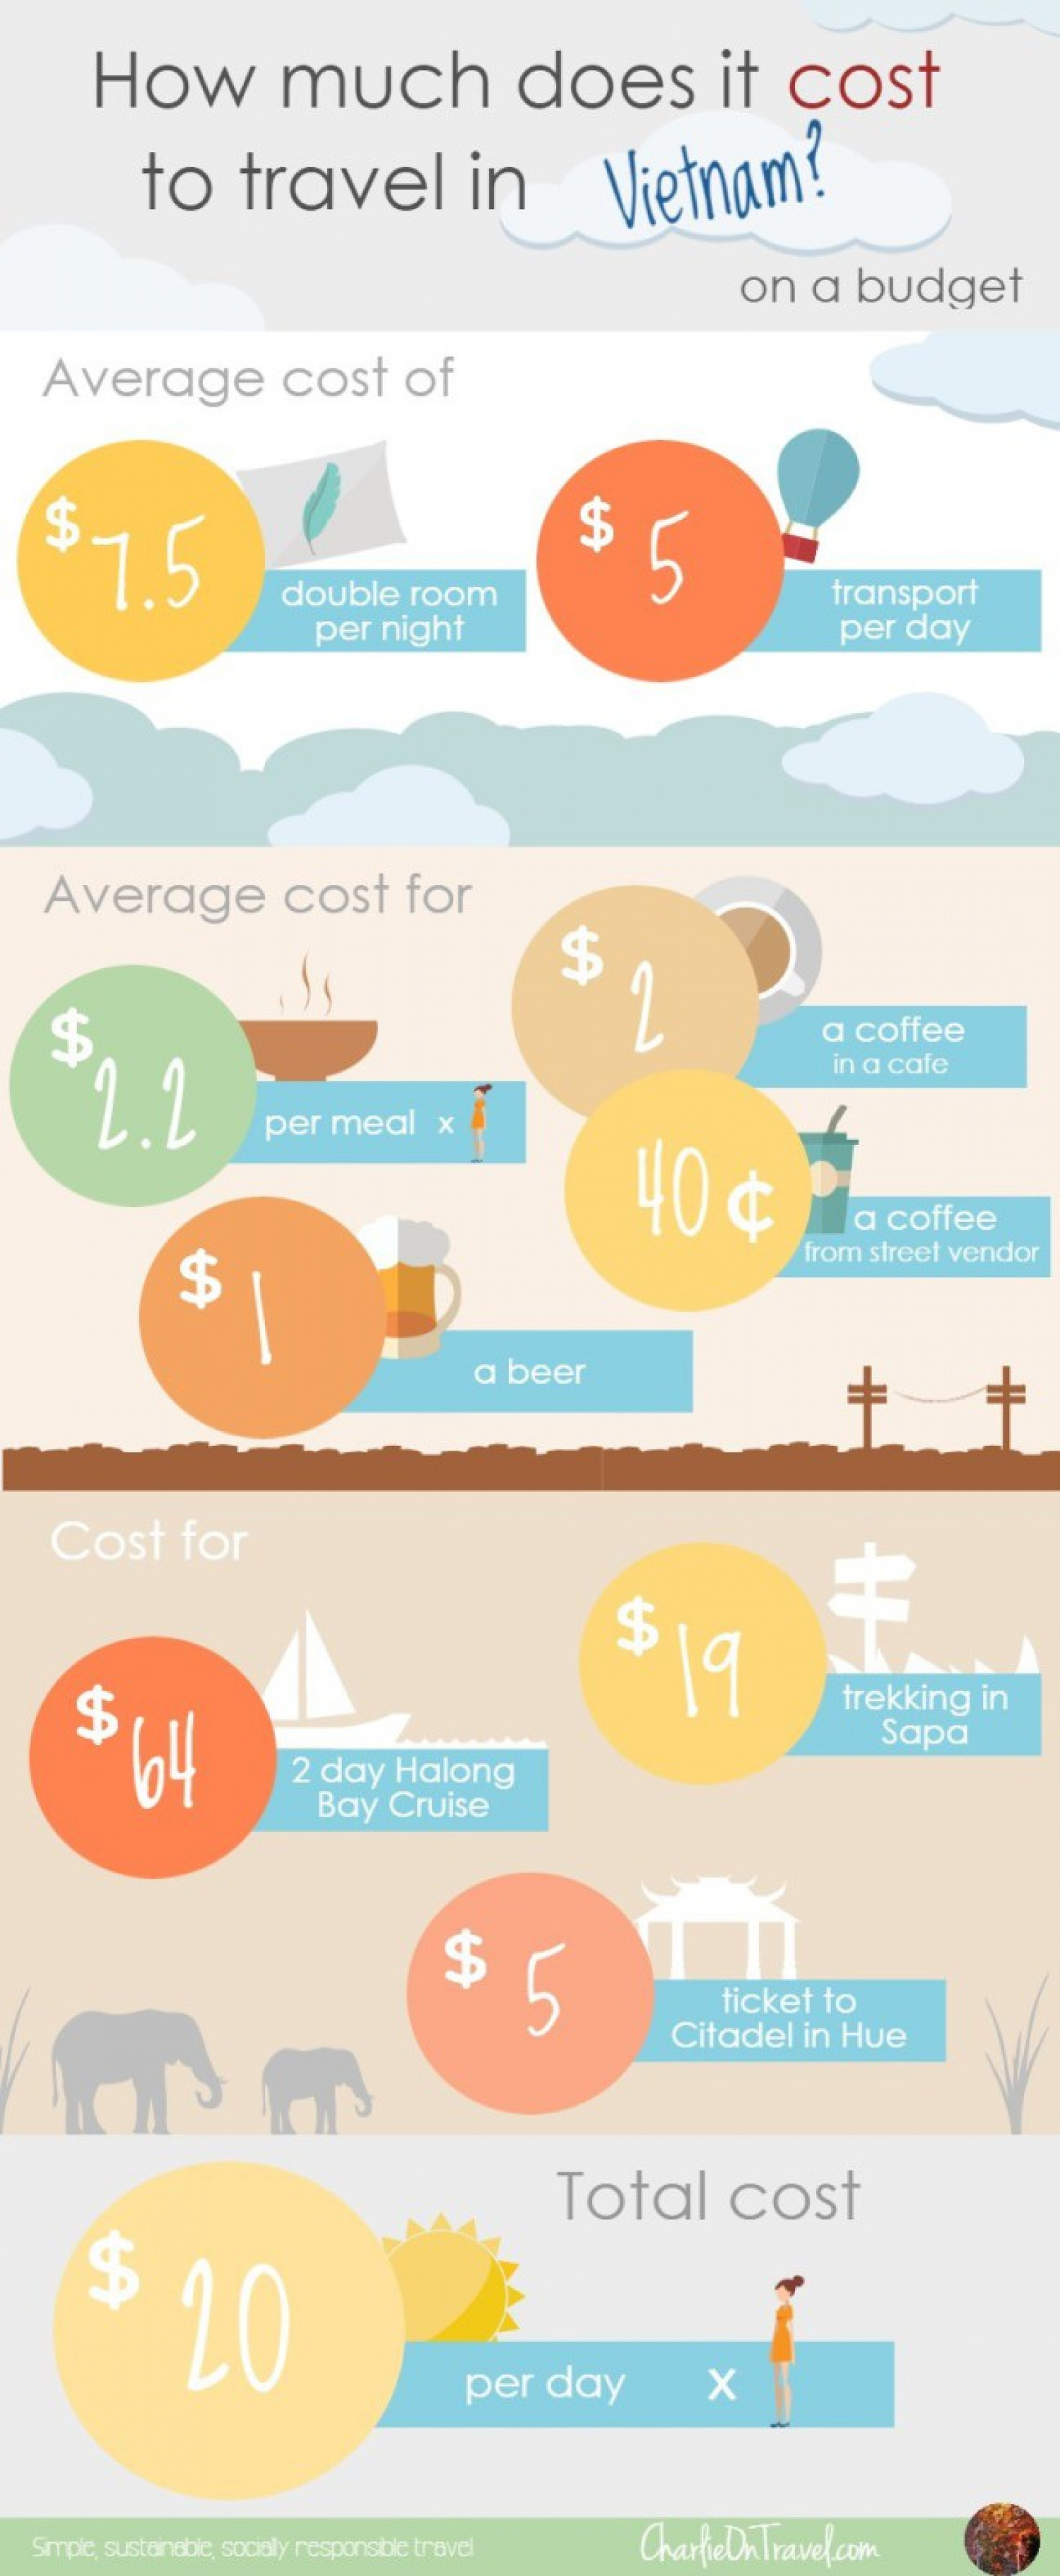 How Much Does it Cost to Travel Vietnam on a Budget? Infographic